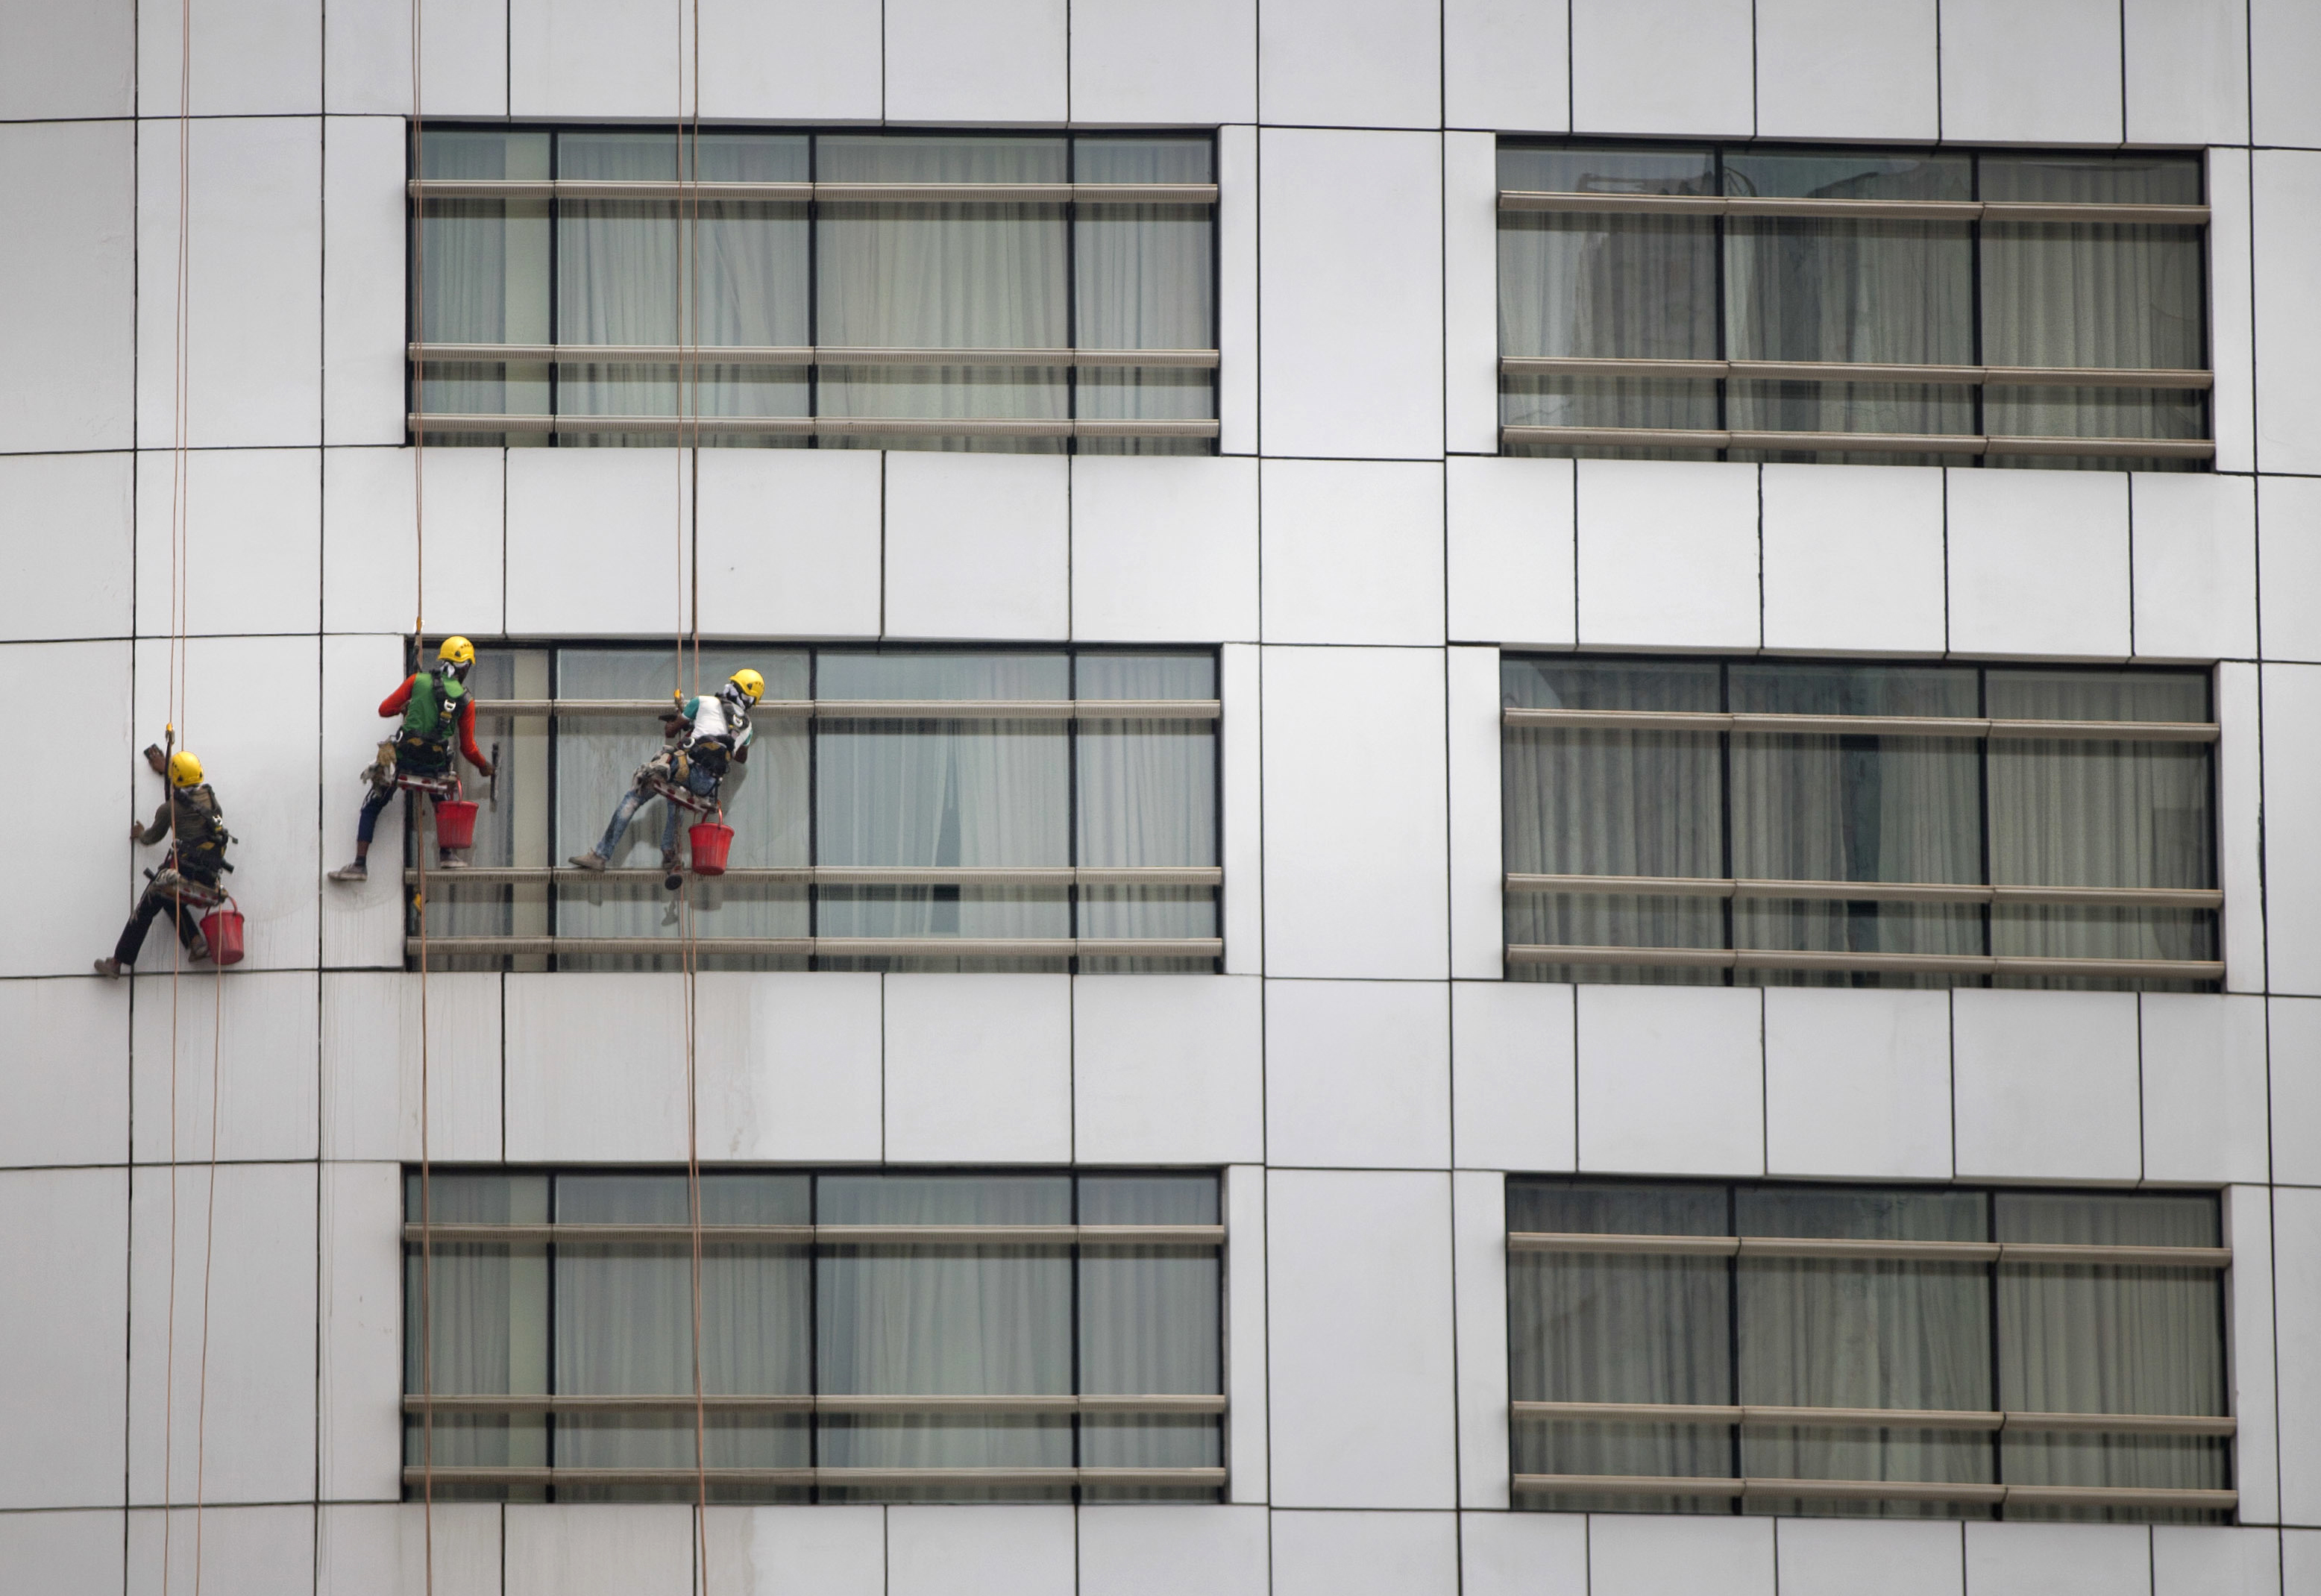 Window cleaners work on glass panes of an office building in Dhaka, Bangladesh, Saturday, March 24, 2018. On an average, each worker earns less than US$5 a day. (AP Photo/A.M. Ahad)